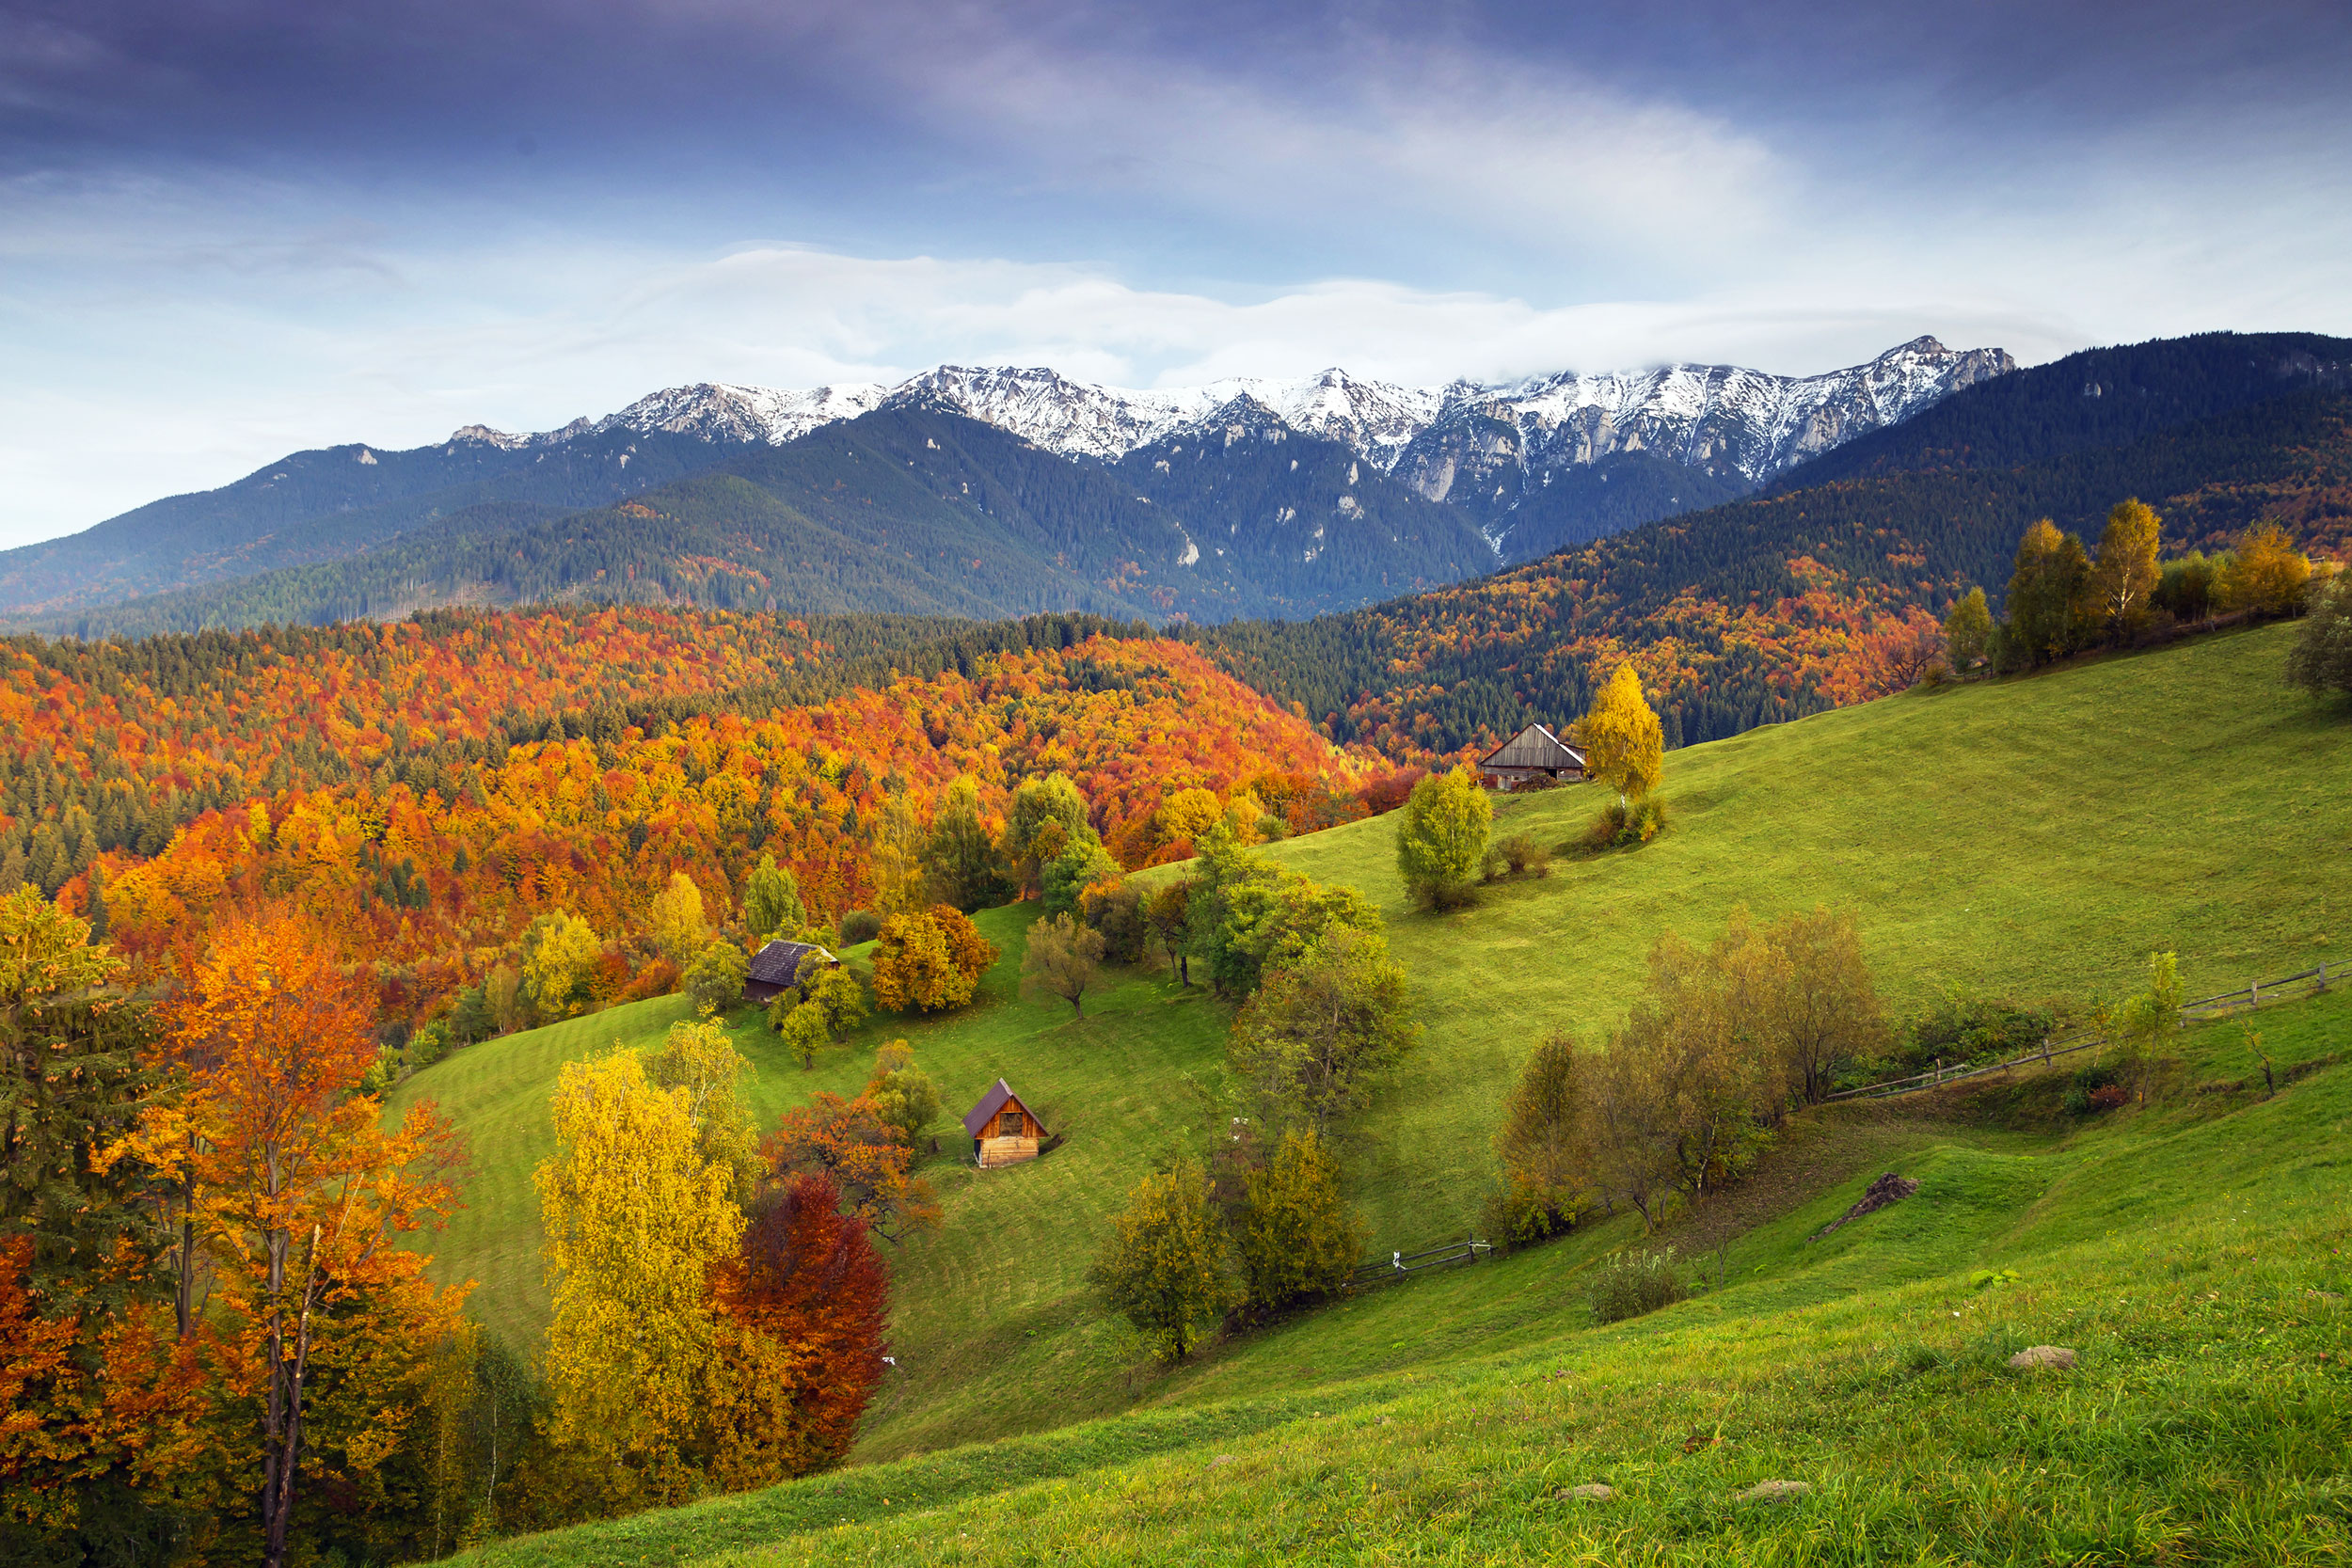 Rolling autumn-coloured countryside going into thickly forested hills with snow-capped mountains in the distance, Romania